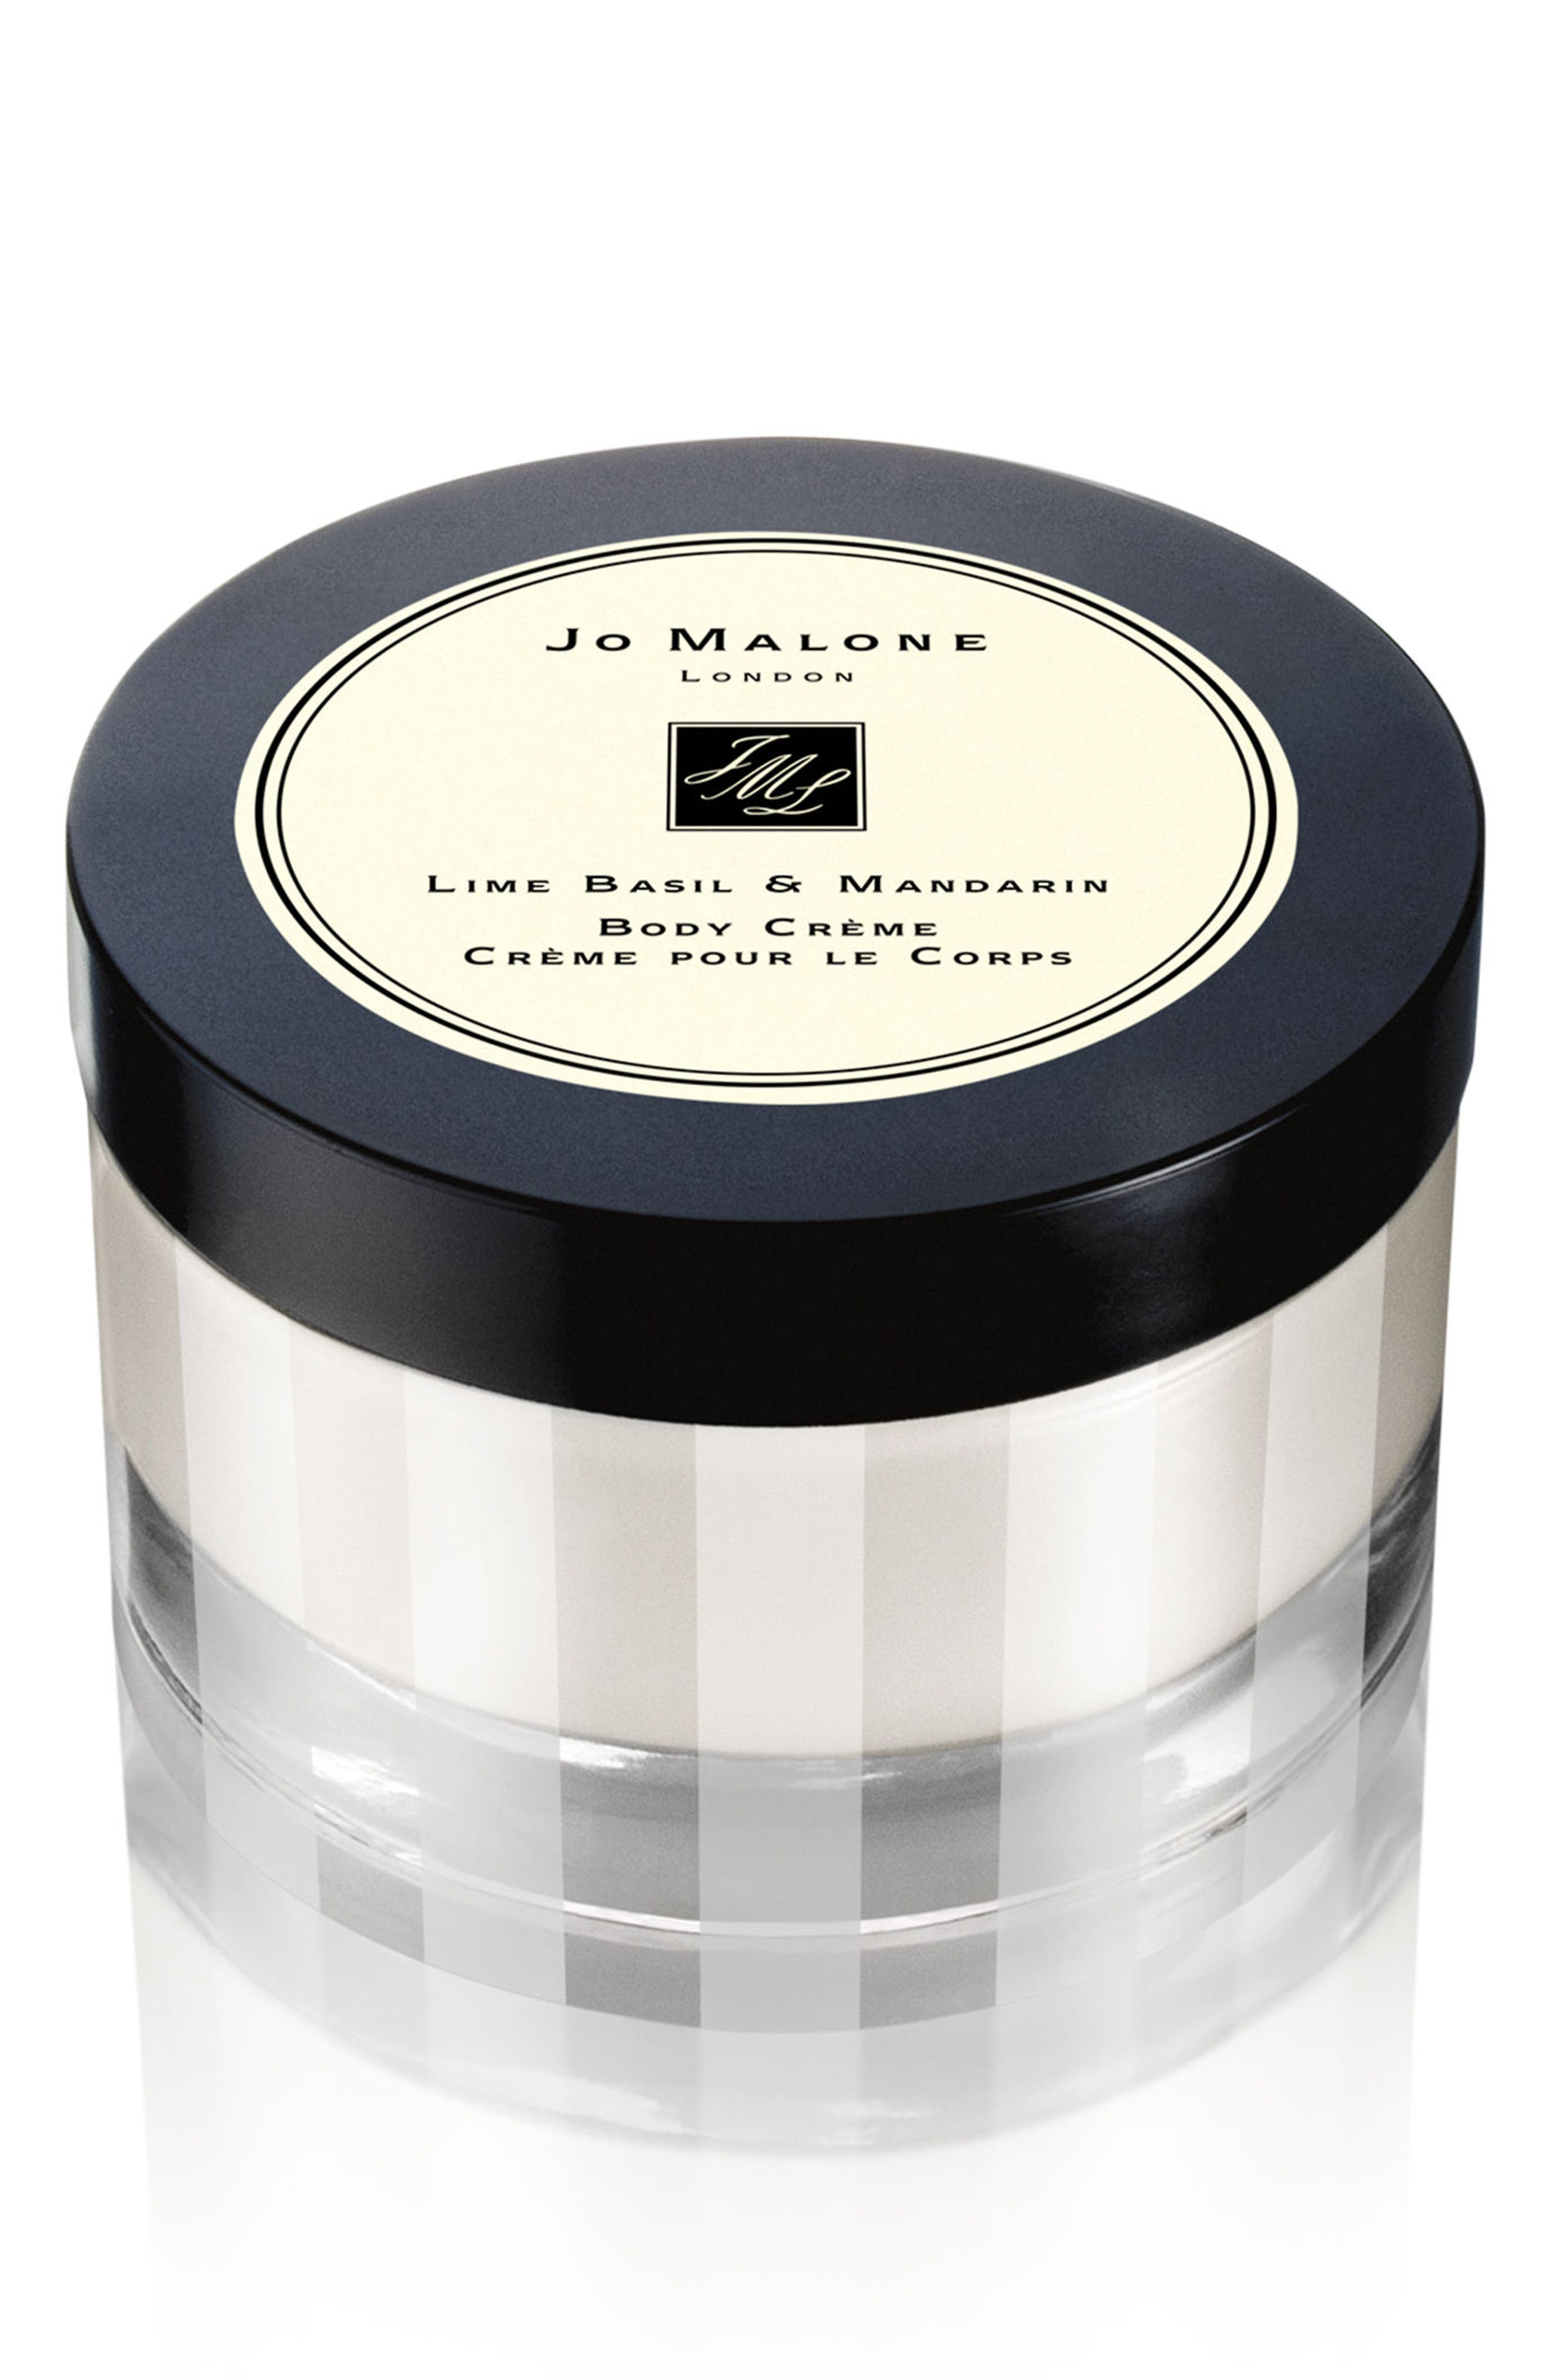 Jo Malone London™ Lime Basil & Mandarin Body Crème